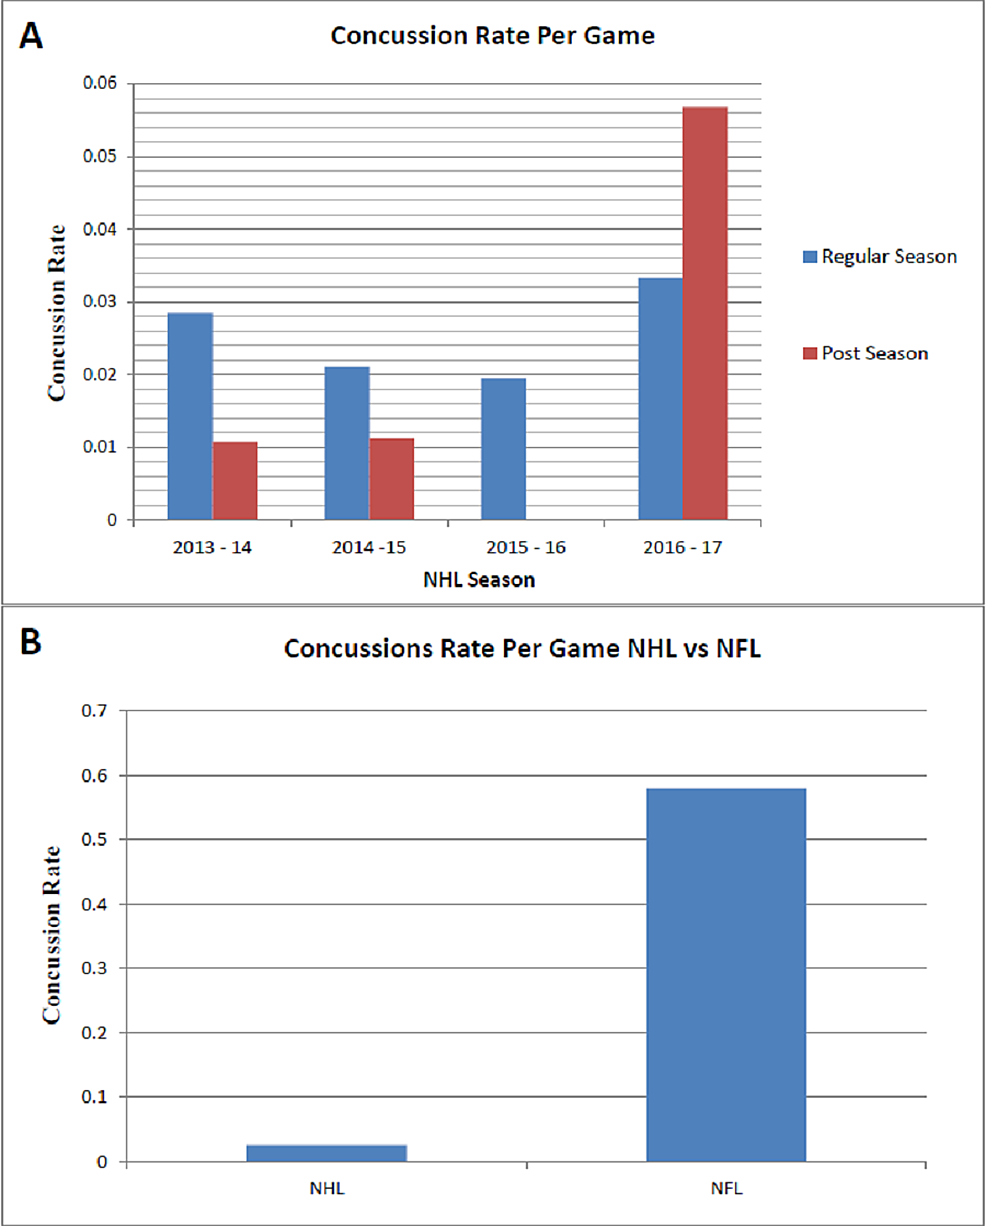 Concussion-Rate-Per-Game-Analysis-